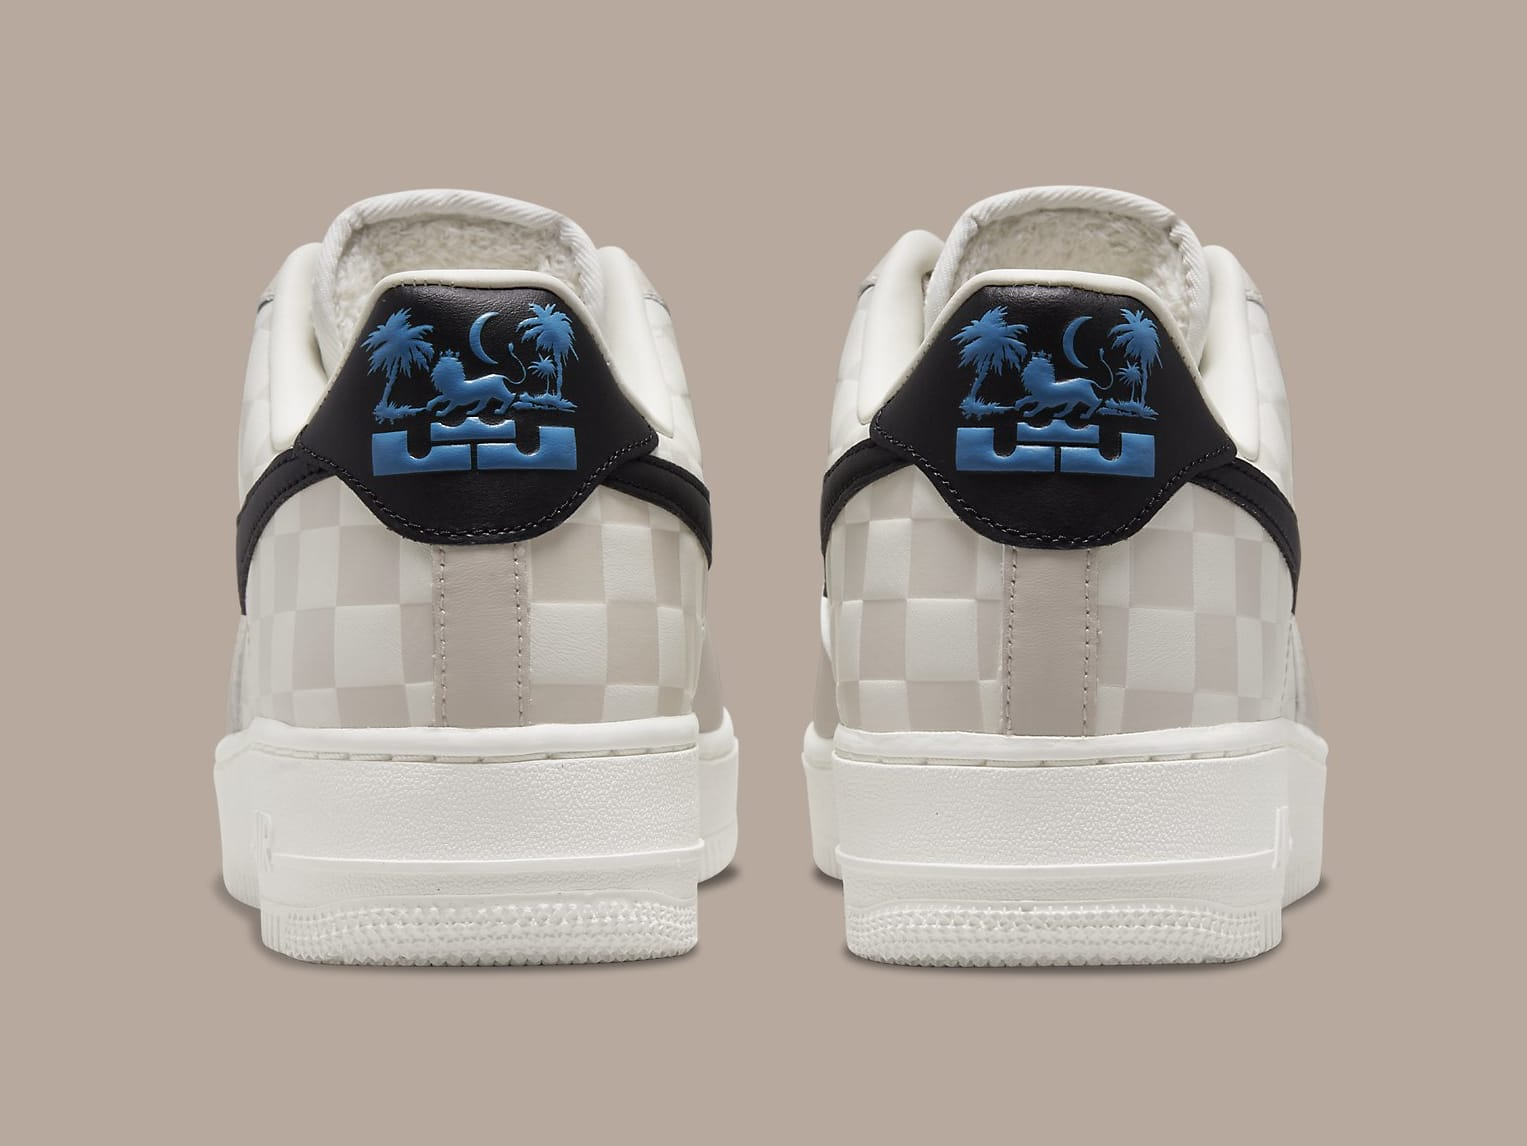 LeBron James x Nike Air Force 1 Low Strive for Greatness Release Date DC8877-200 Heel